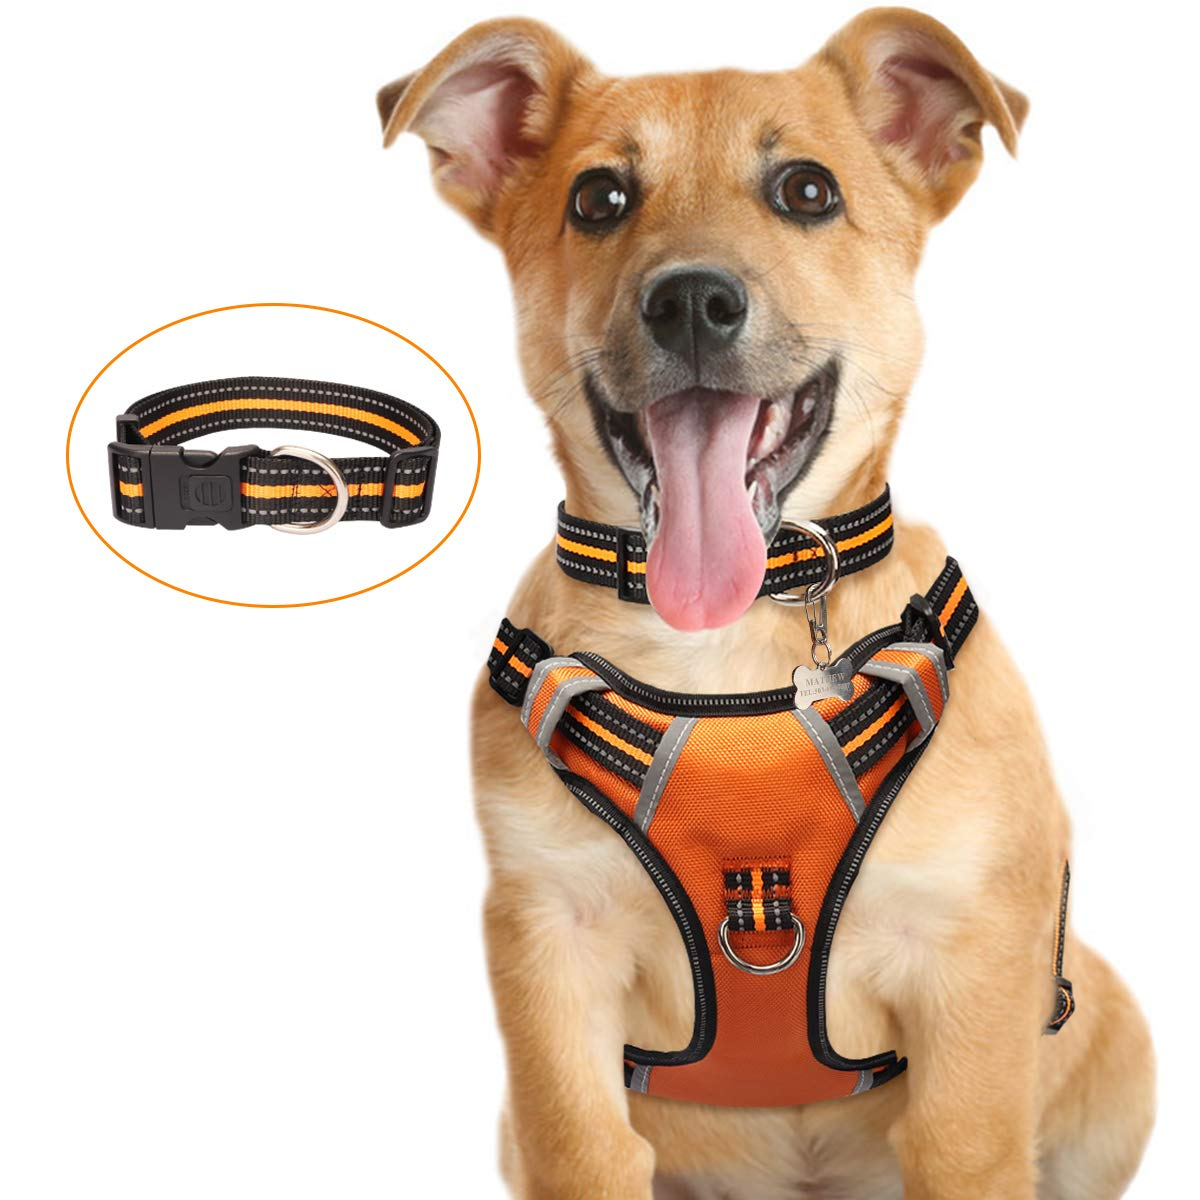 Large Medium Pet Harnesses with Dog Collar Easy Control Handle for Walking WINSEE Dog Harness No Pull Adjustable Reflective Oxford Outdoor Vest Front//Back Leash Clips for Small Extra Large Dogs